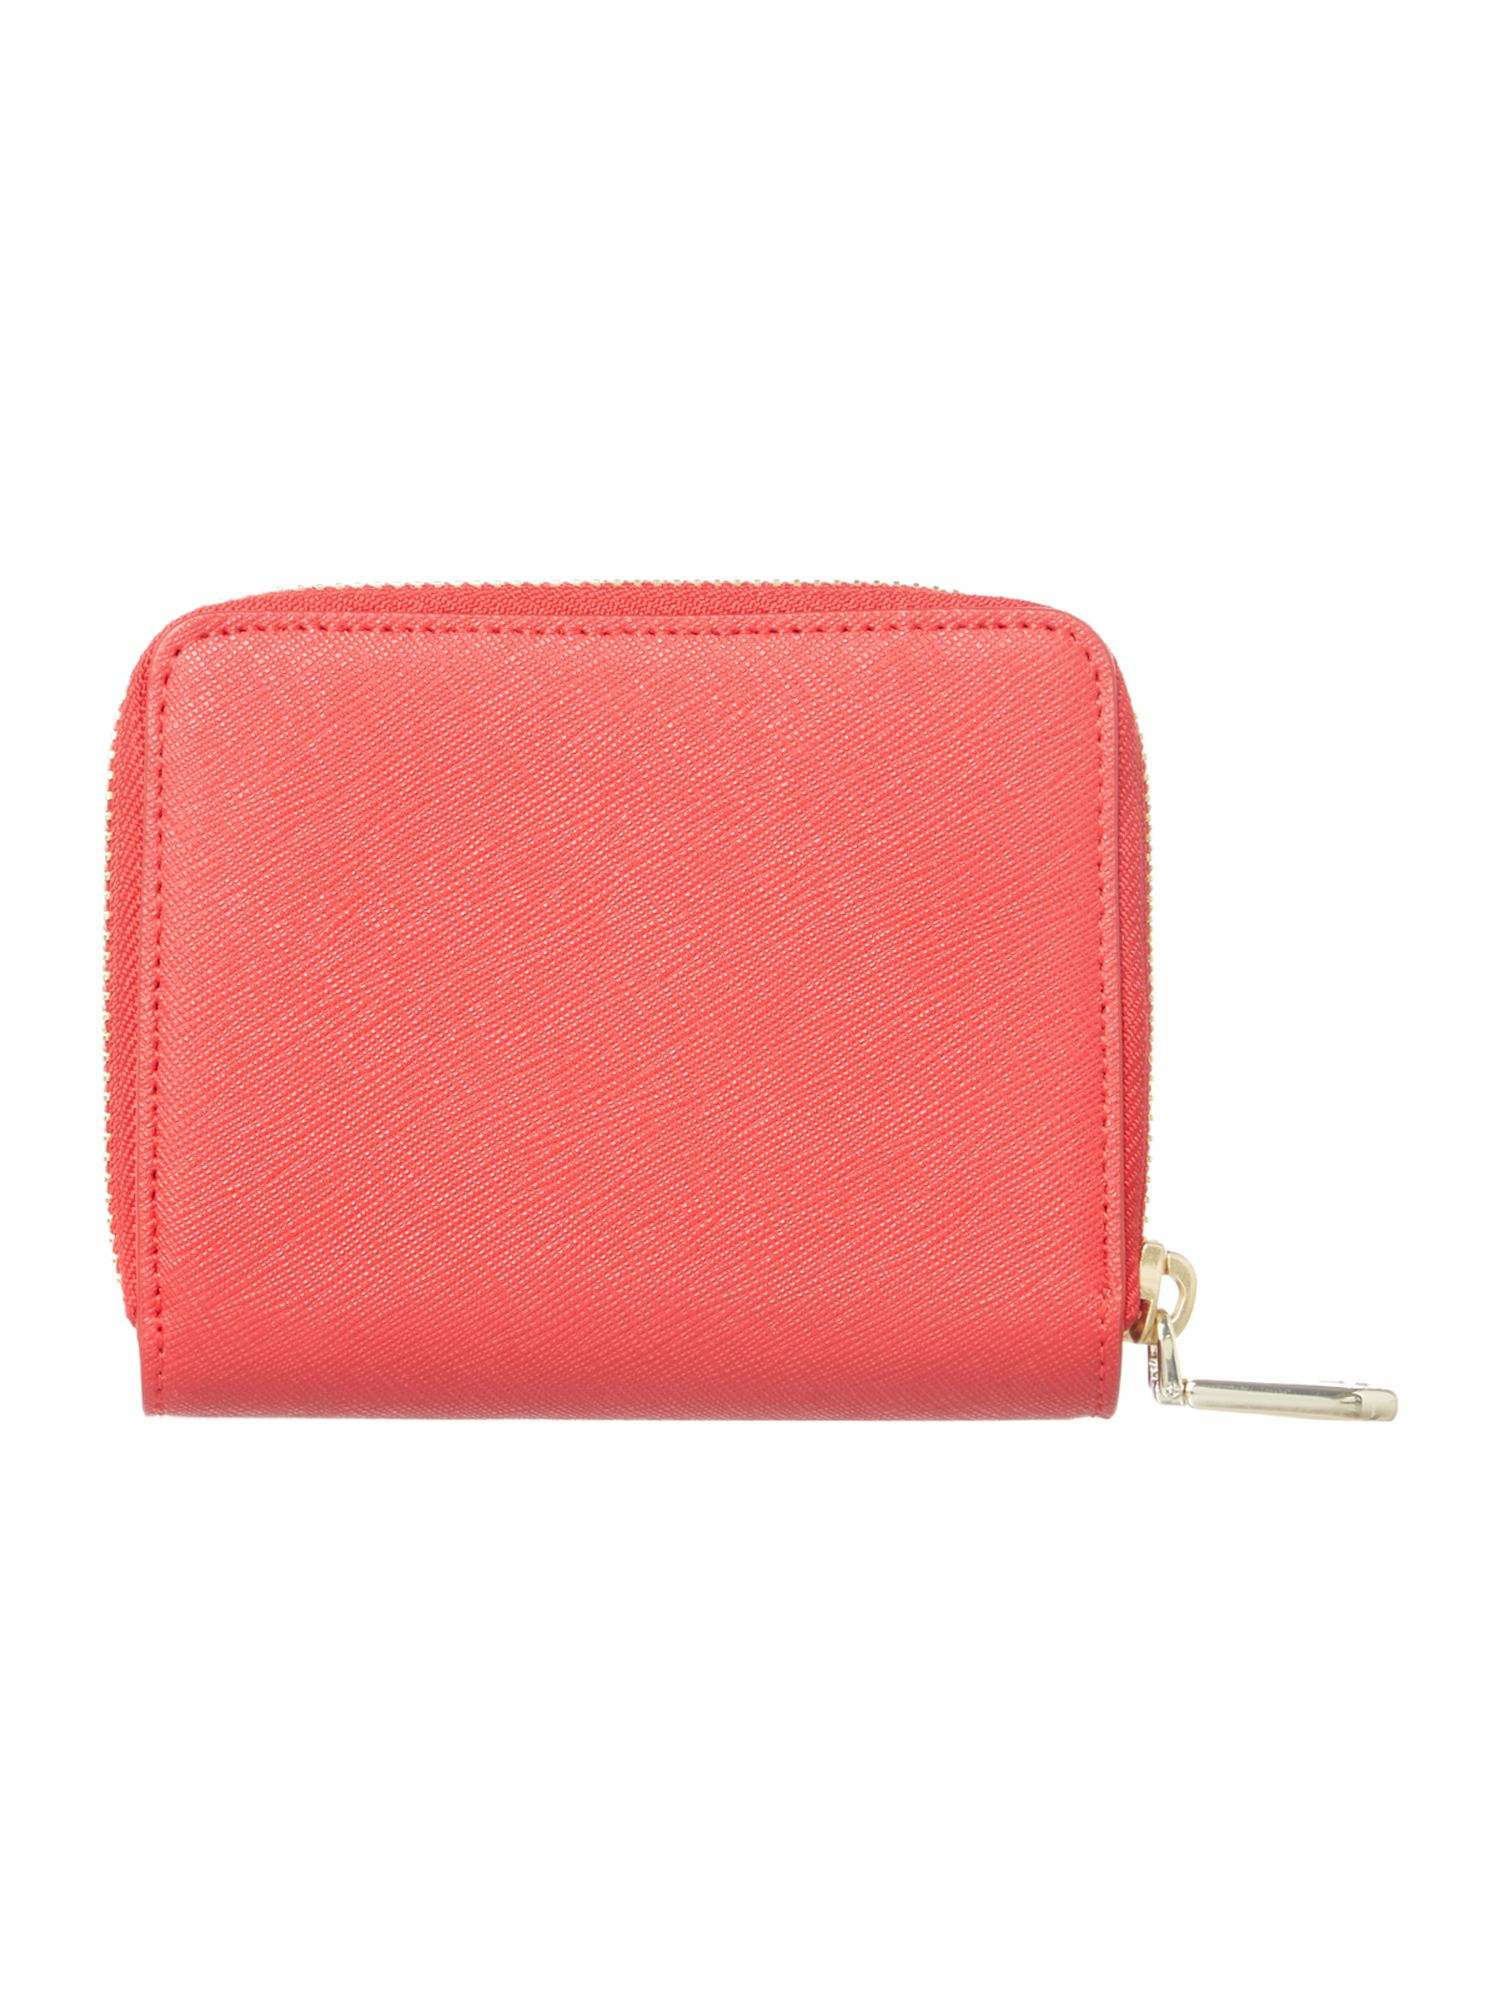 Bryant park red small zip around purse